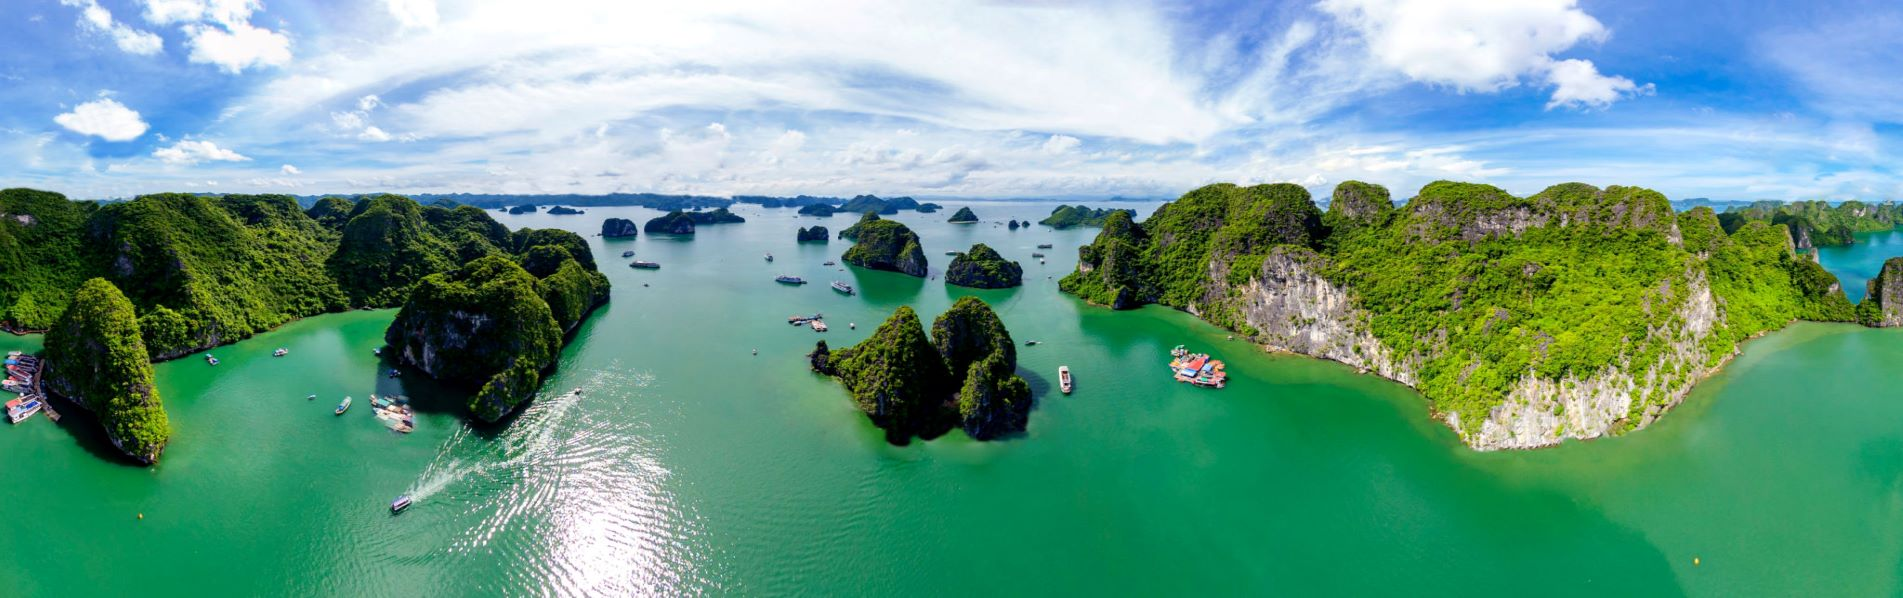 Halong Heli Tours - Enjoy wonder from the sky!